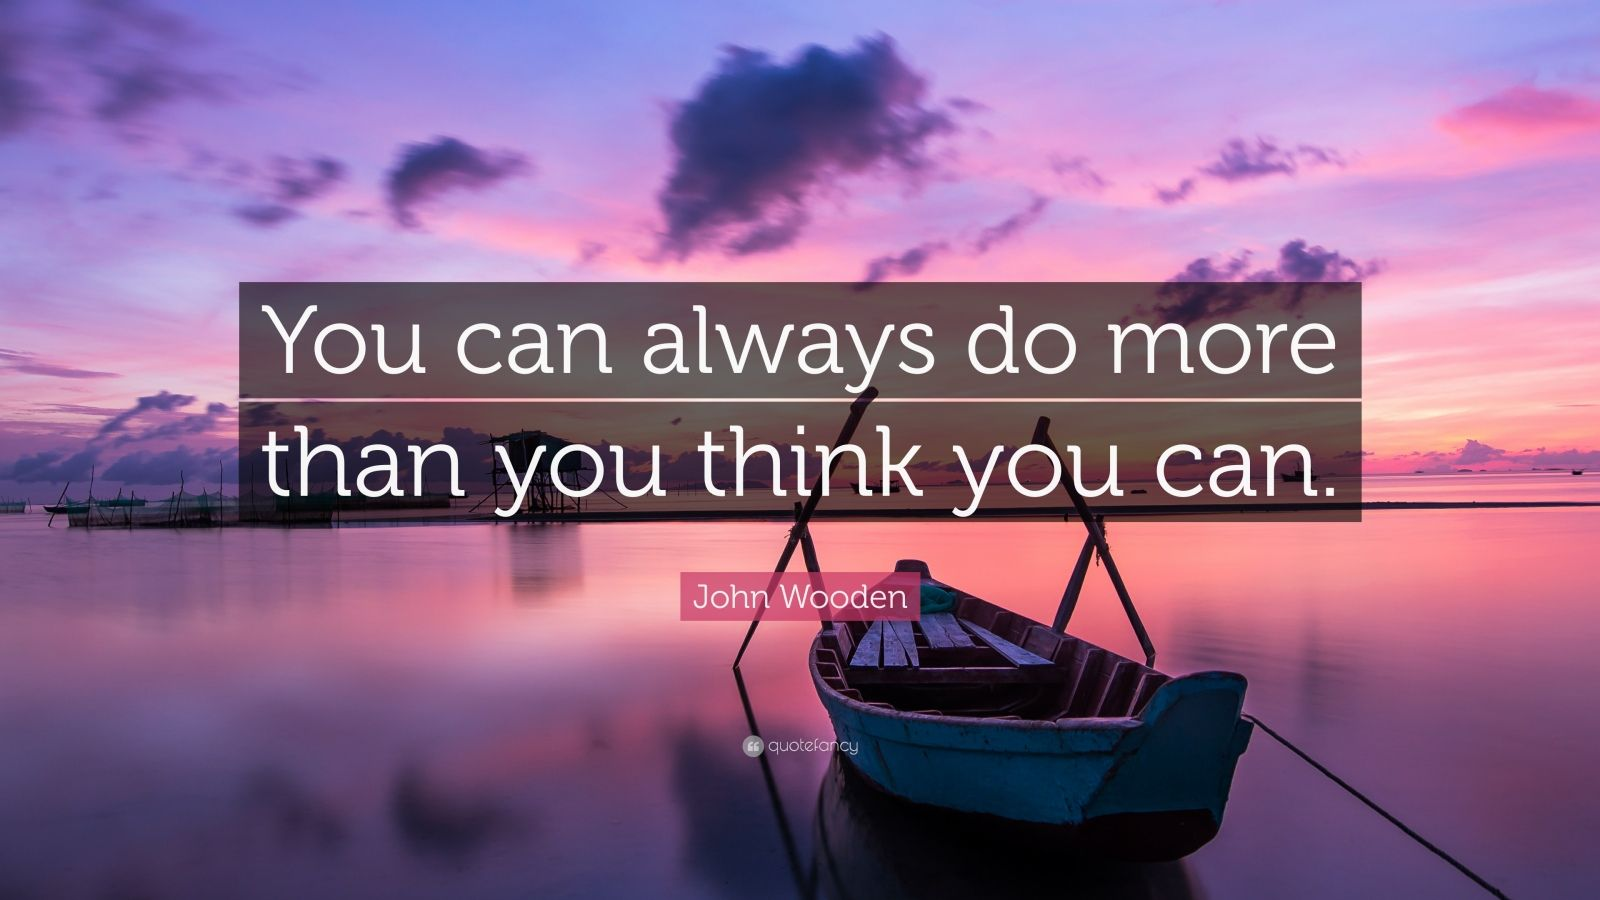 """John Wooden Quote: """"You can always do more than you think you can."""" (12 wallpapers) - Quotefancy"""